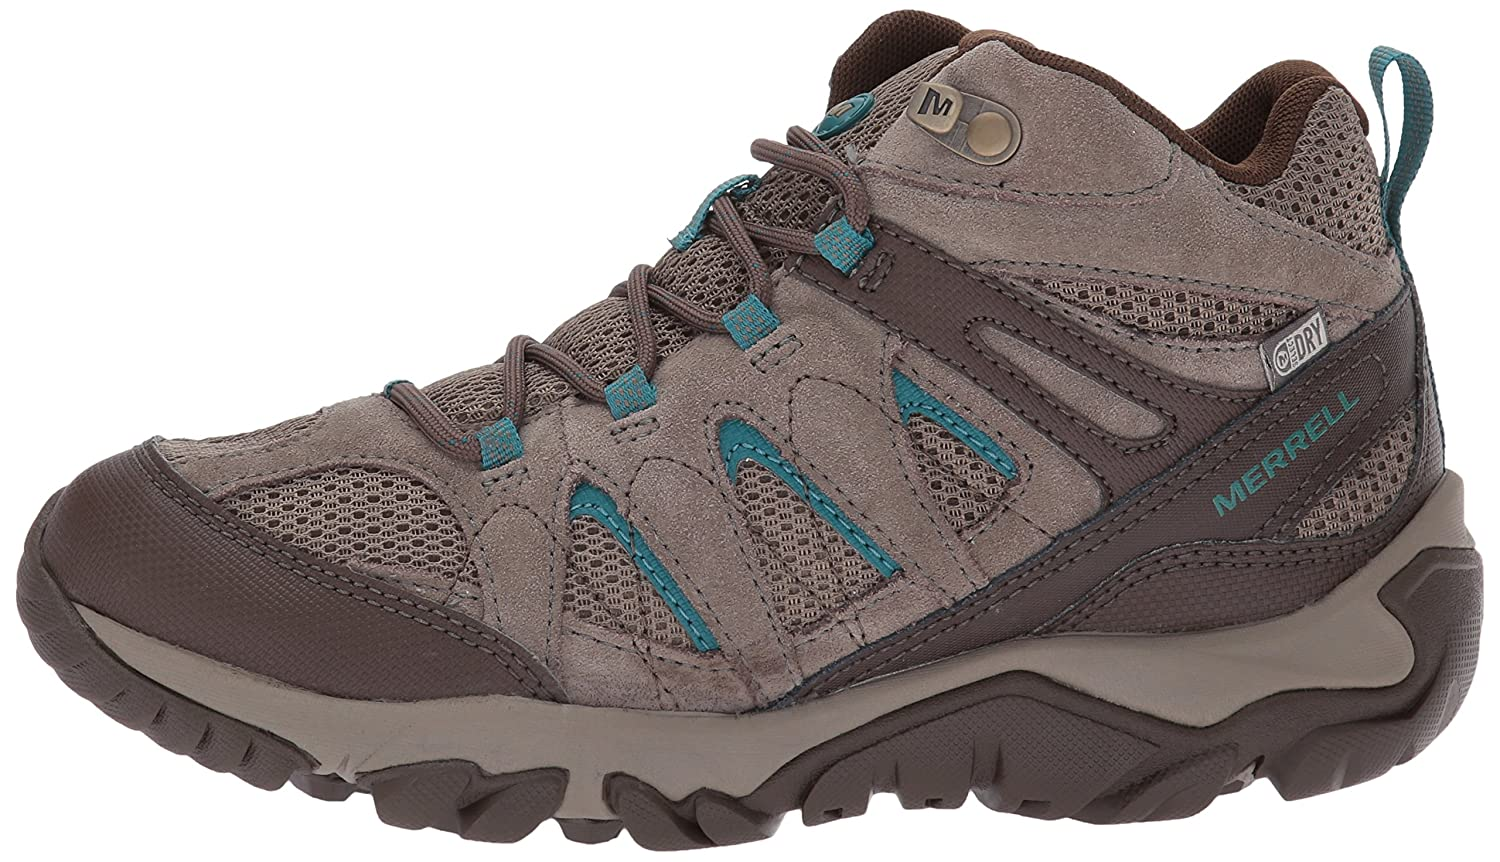 MerrellOUTMOST Mid Mid Mid Vent WTPF - Outmost Mid Vent WTPF Donna 3f6a68